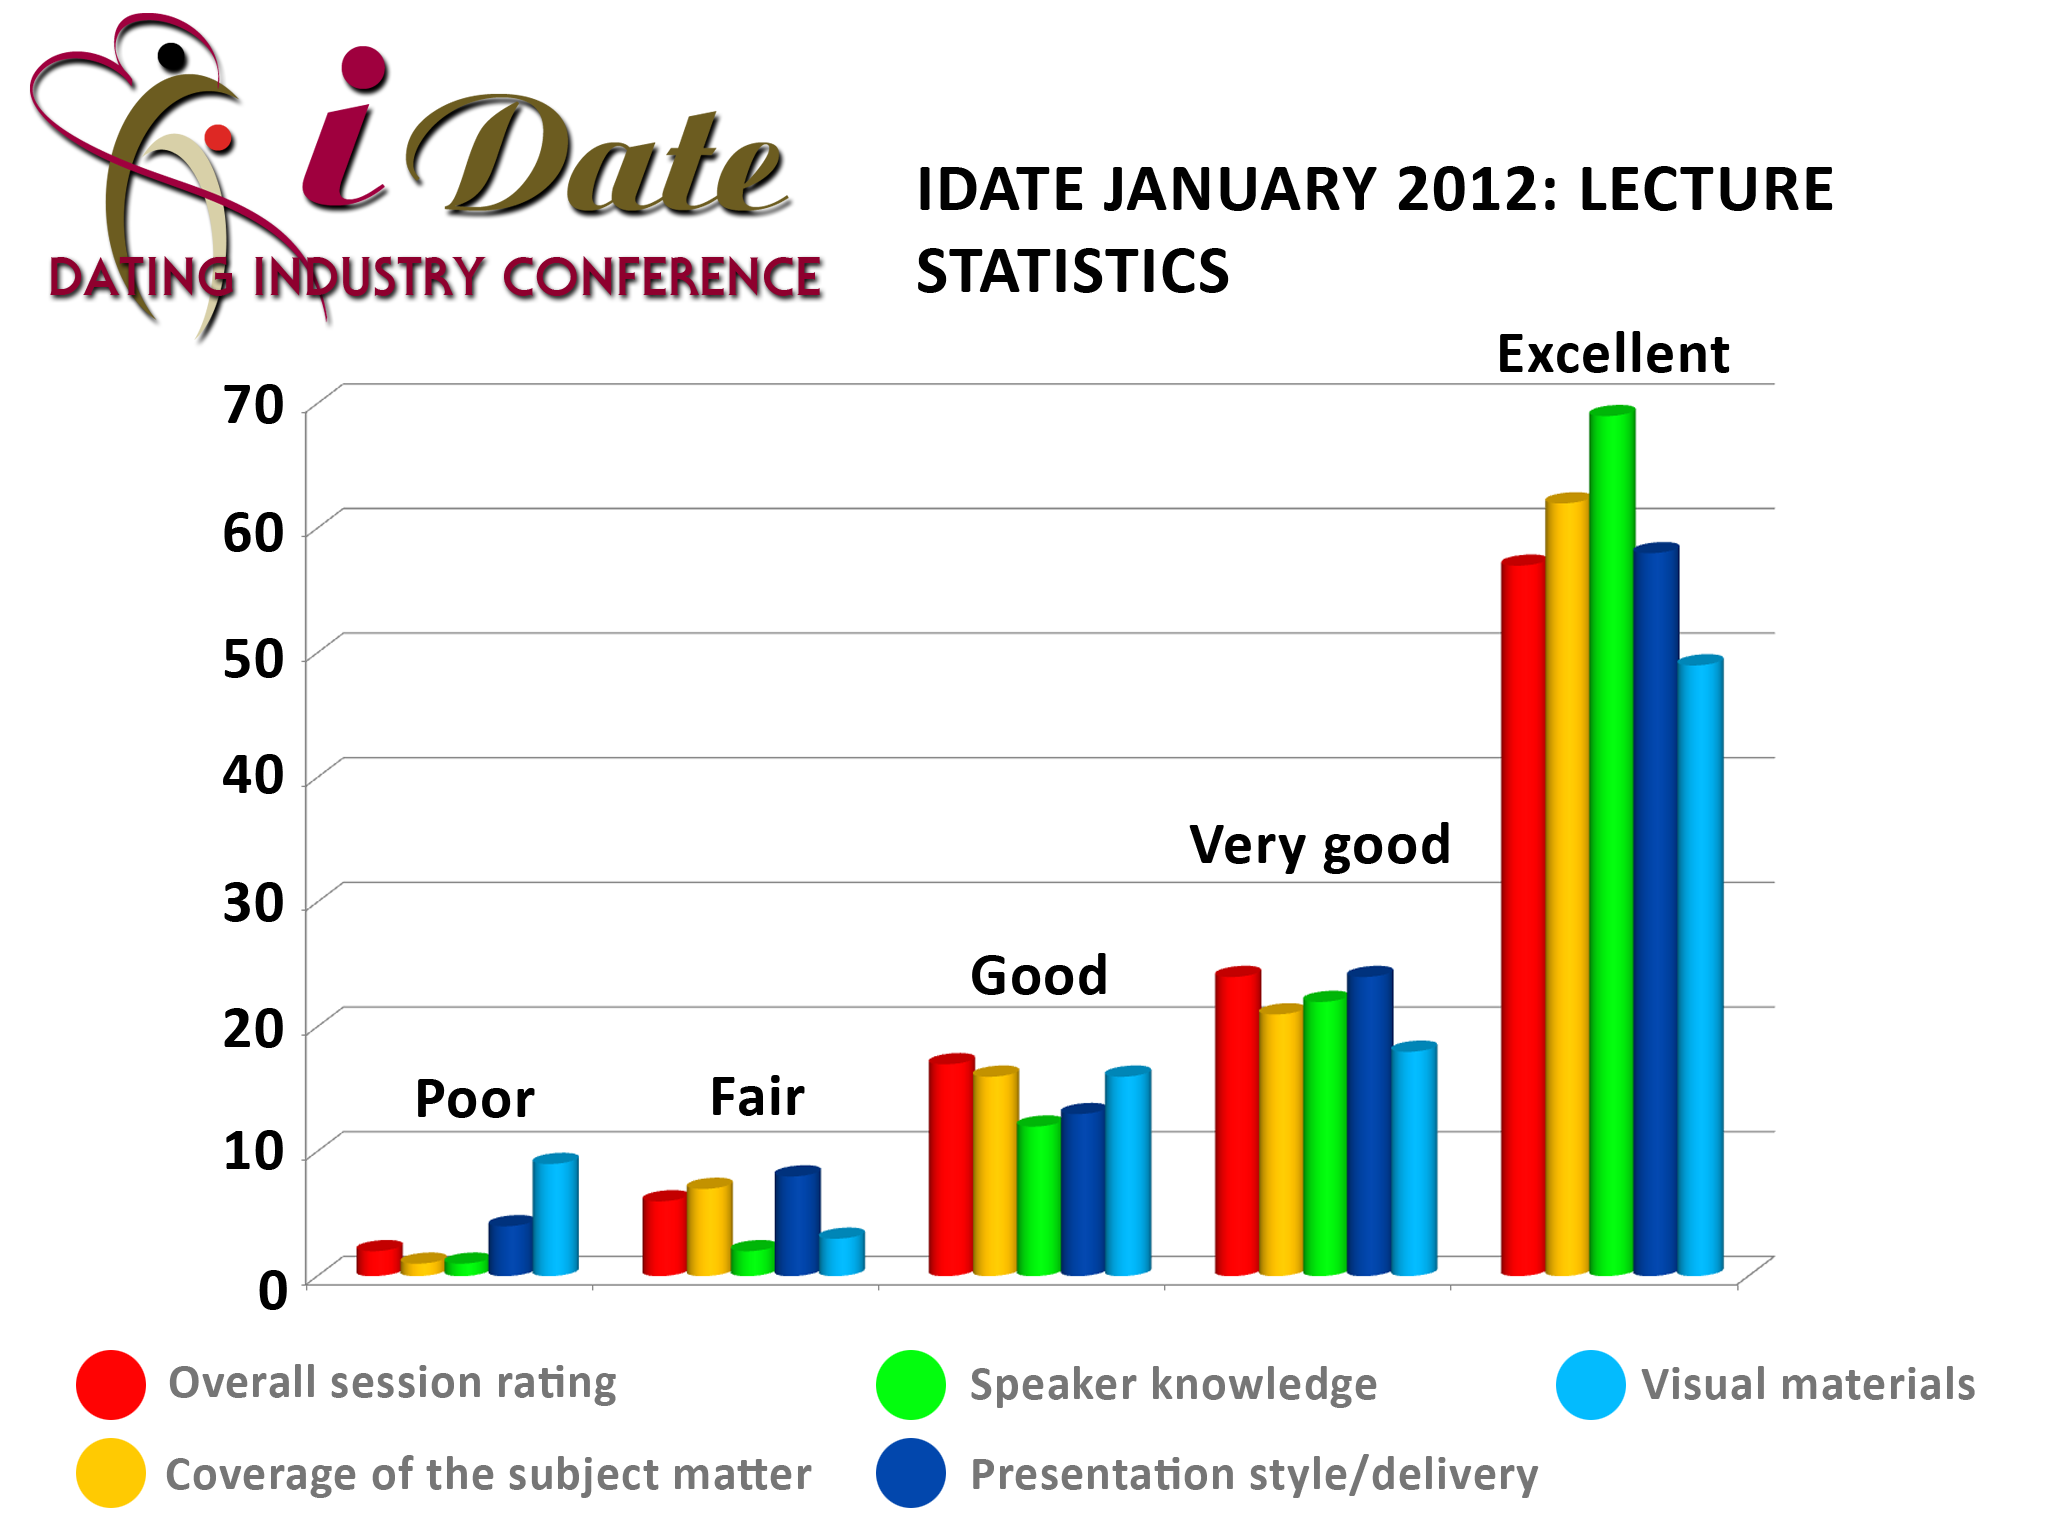 iDate January 2012 Lecture Statistics from the Online Dating Industry Conference